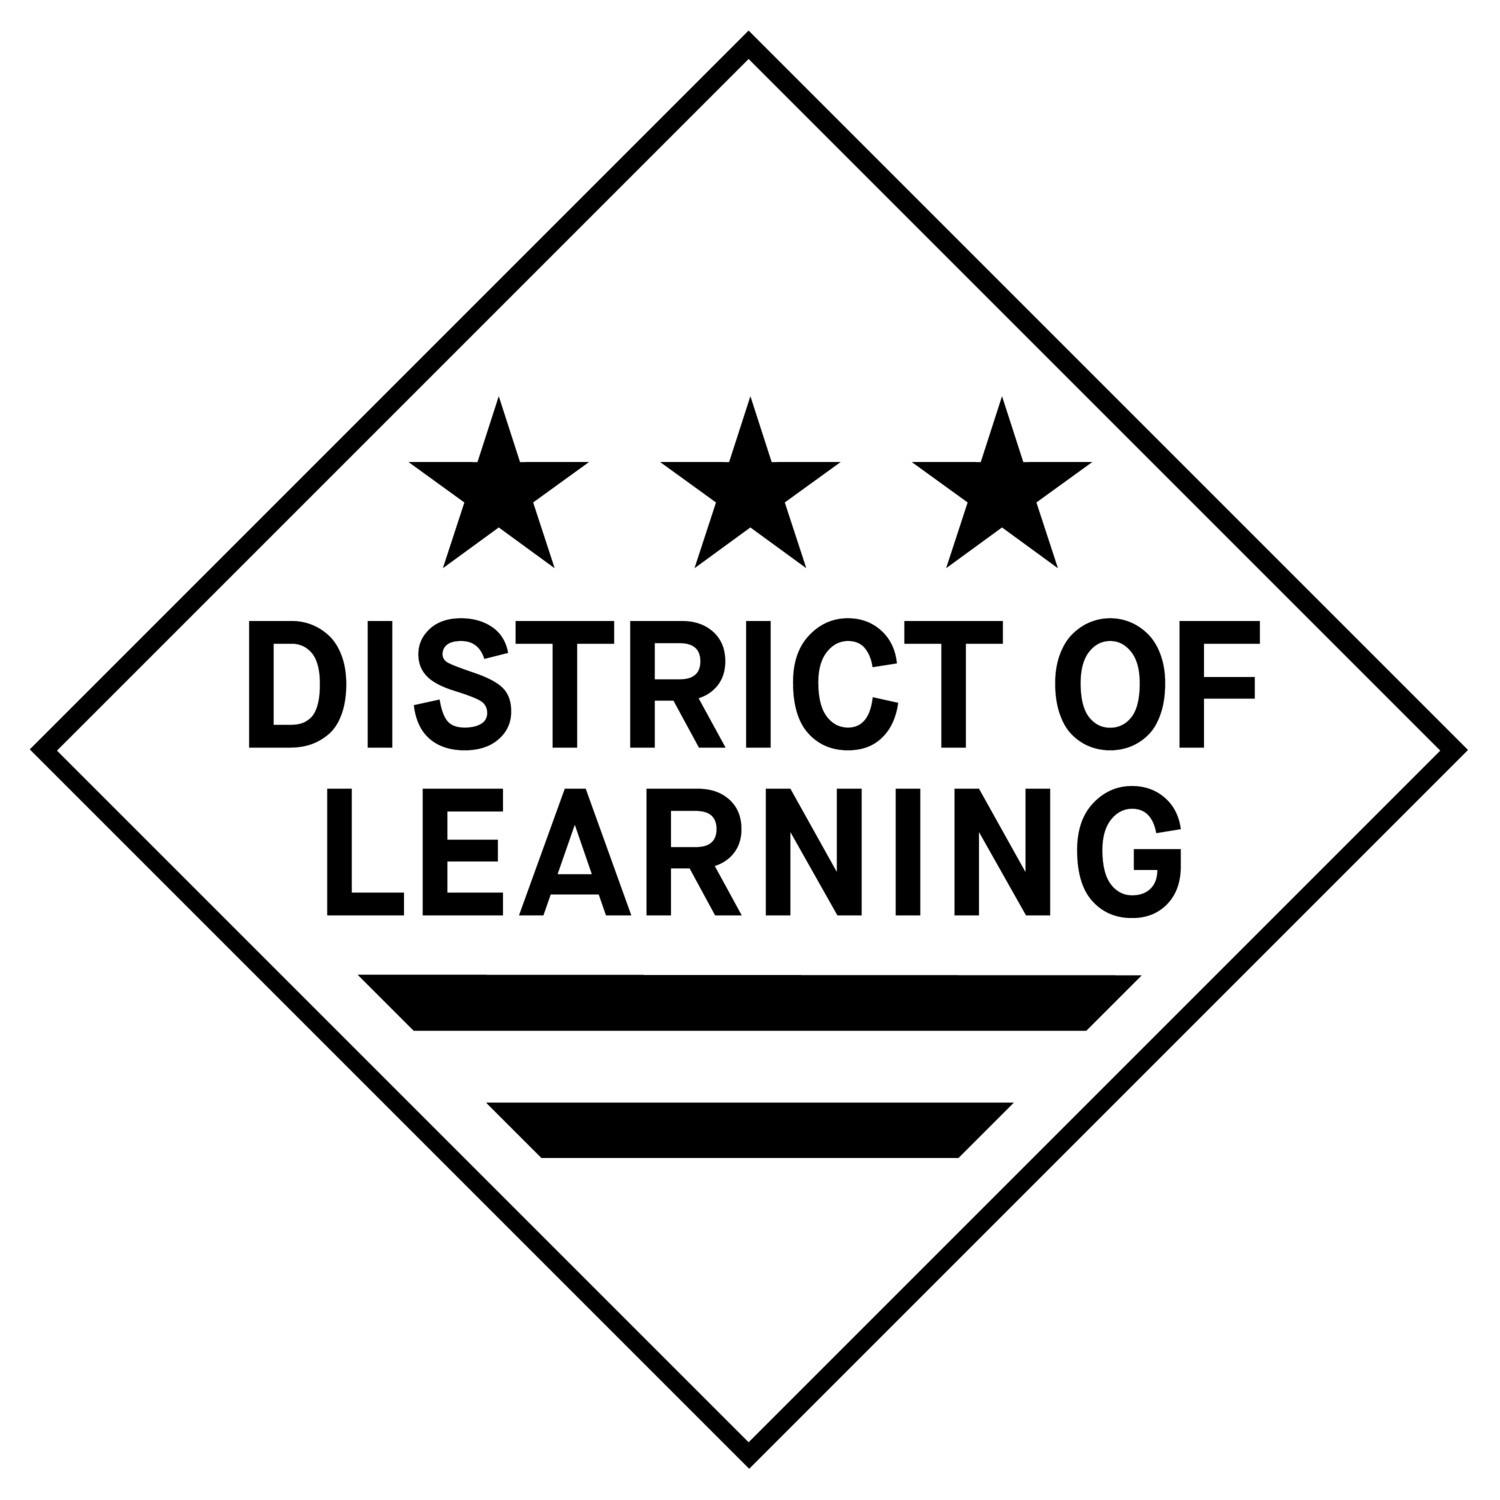 District of Learning